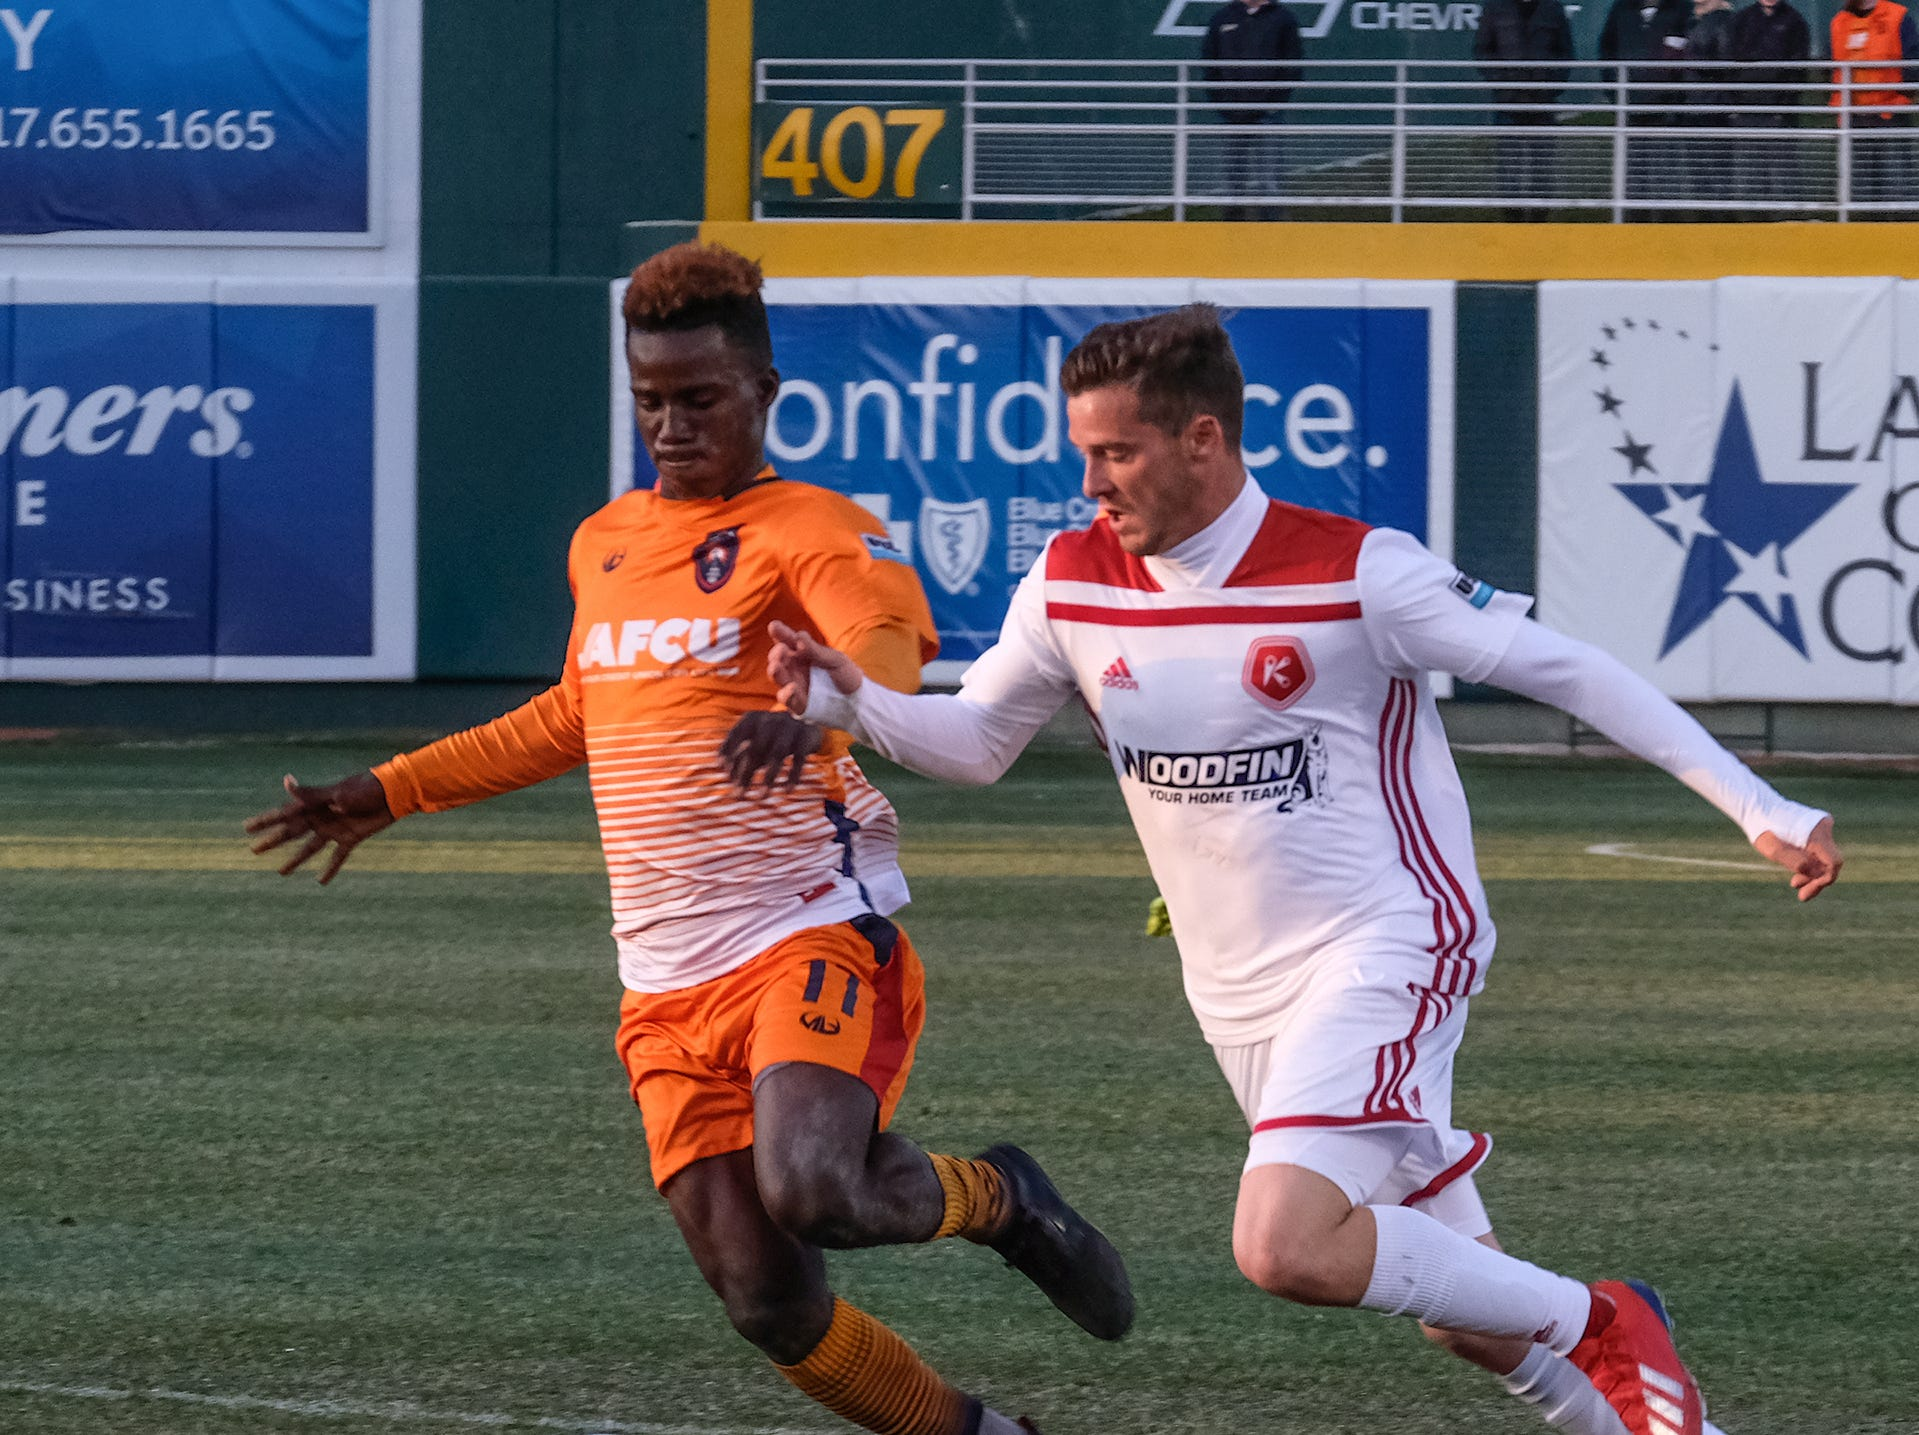 Lansing Ignite's Steeve Saint-Duc (11) left and Matt Bolduc from Richmond tangle in the first home match for the Lansing Ignite Saturday, April 13, 2019.